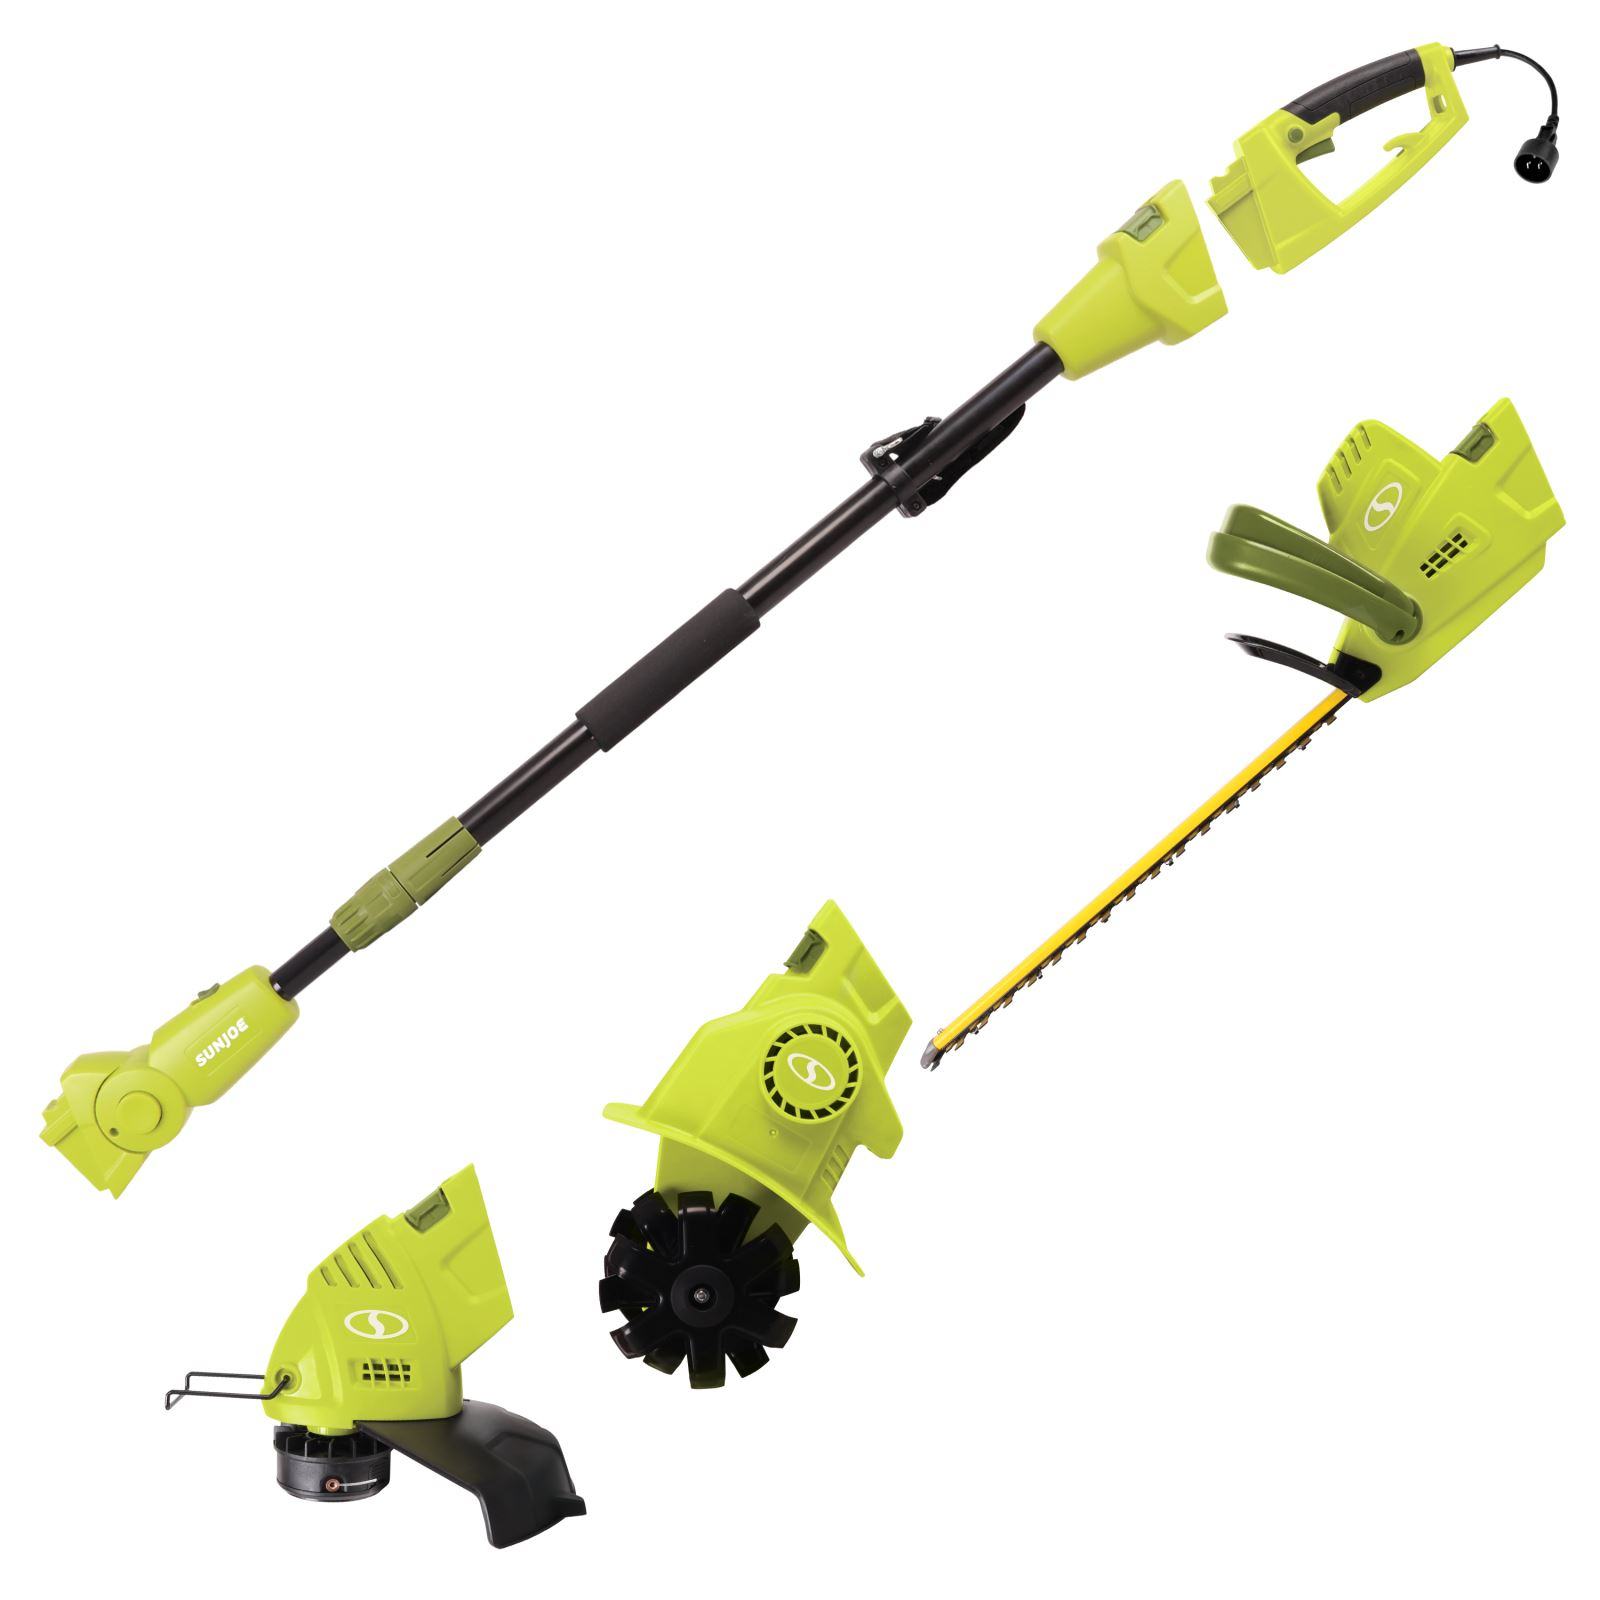 Sun Joe GTS4000E Electric Lawn Care System | Pole Hedge Trimmer · Grass Trimmer · Garden Tiller